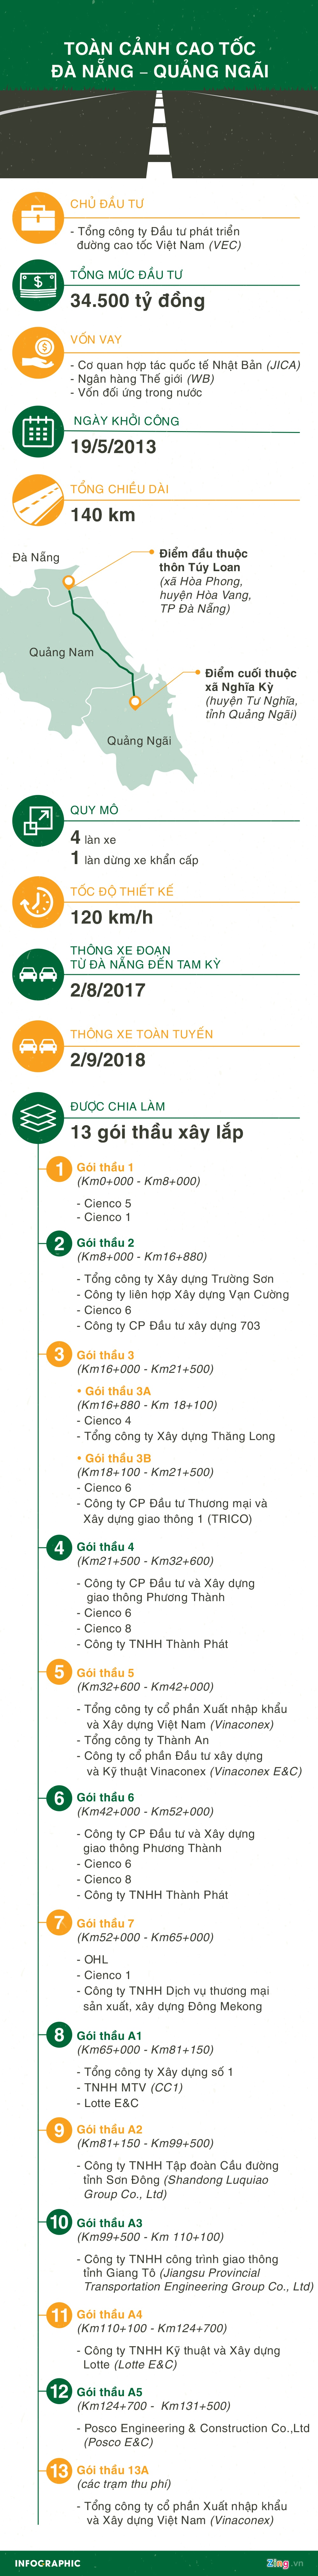 Phat hien them nhieu cau tren cao toc 34.500 ty bi nut, tham nuoc hinh anh 16